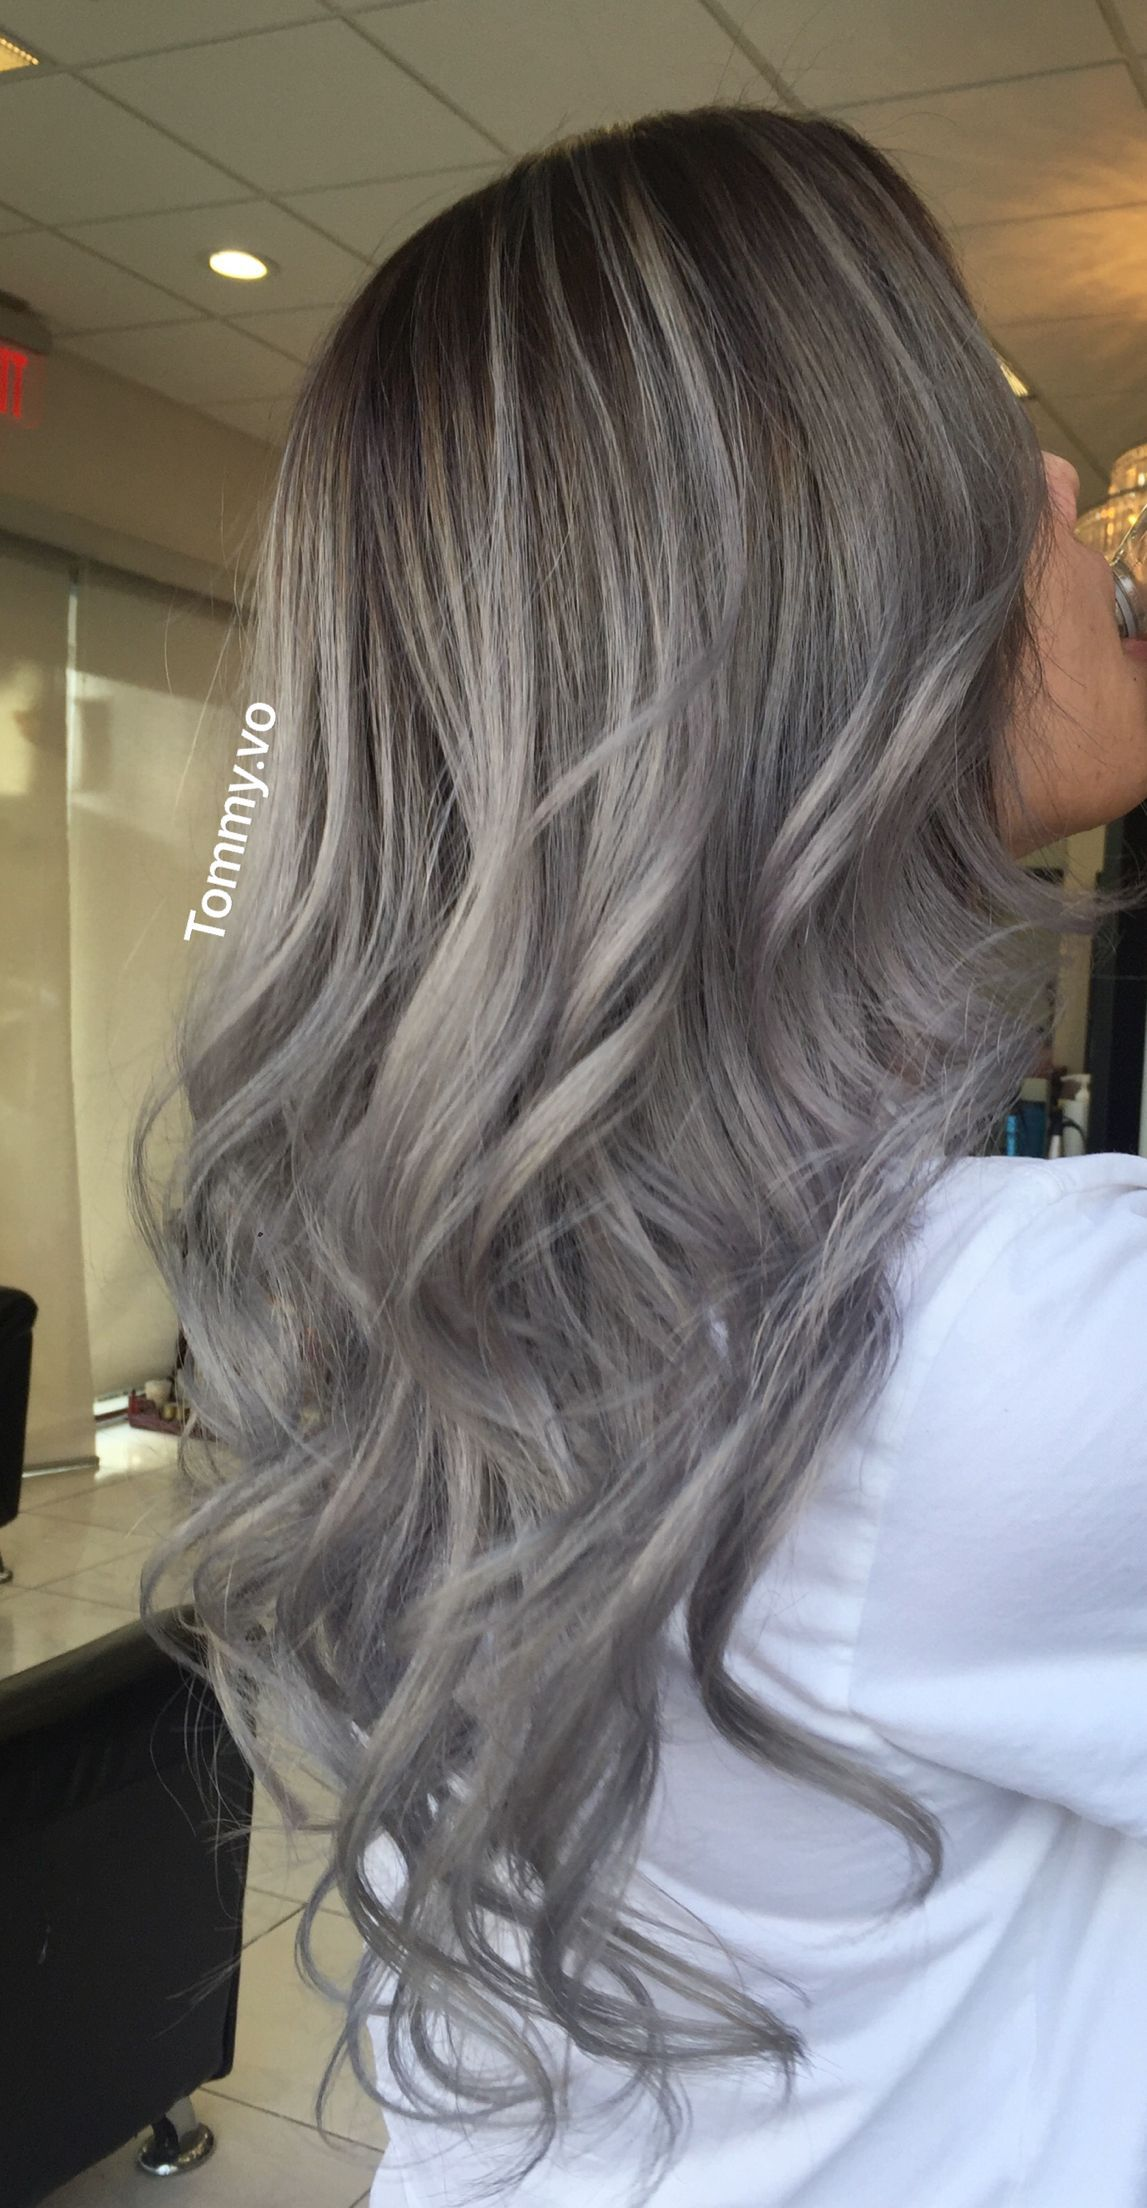 2021 New Lace Front Wigs Copper Brown Hair Ash Gray Hair Color Ombre I Have Gray Hair